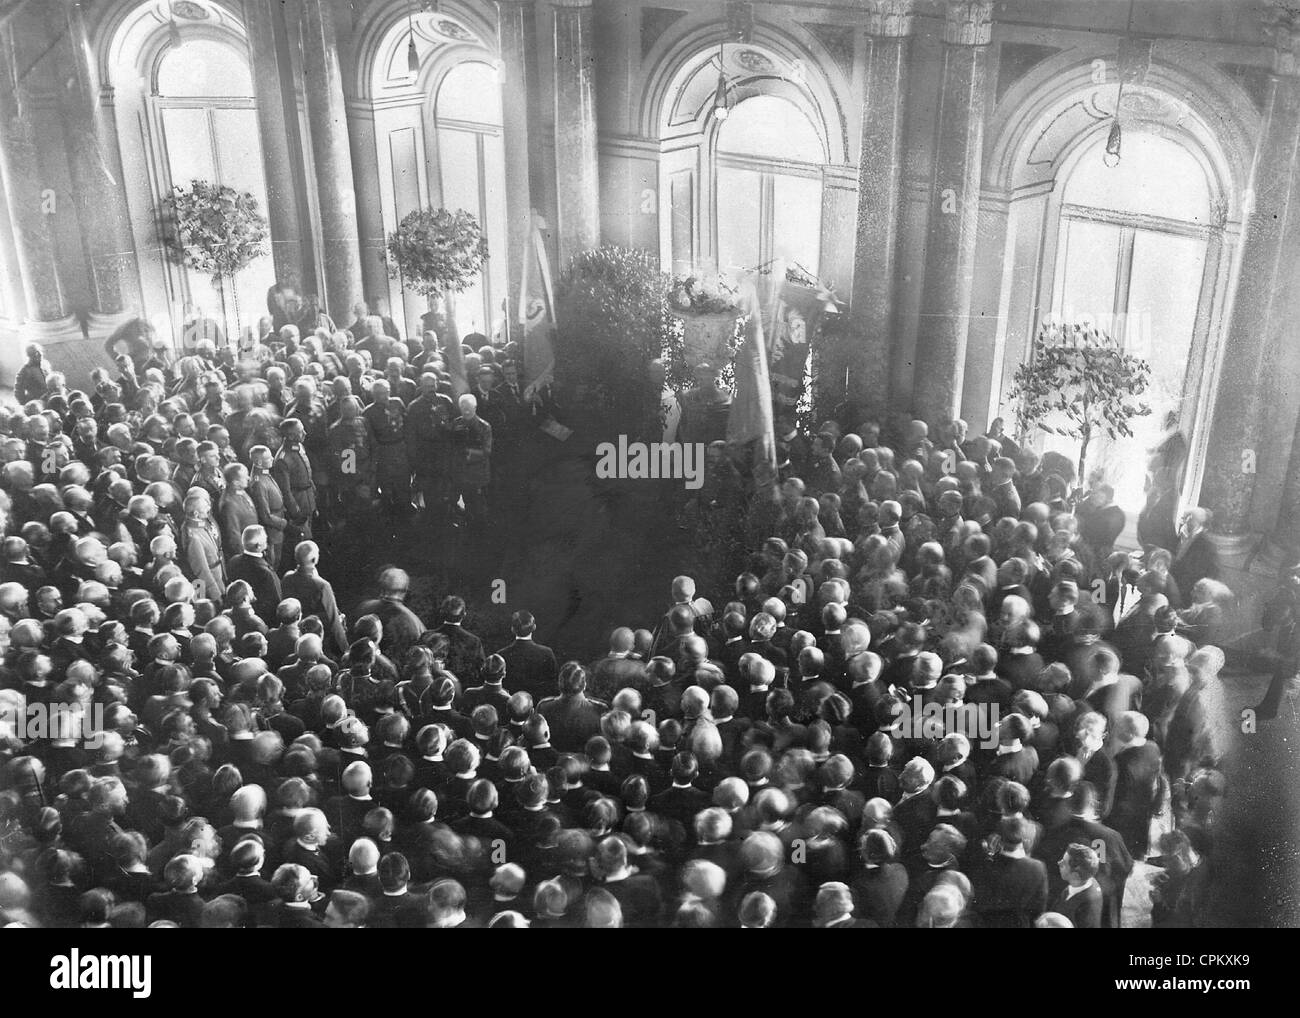 Proclamation of the Kingdom of Poland in the First World War, 1916 - Stock Image